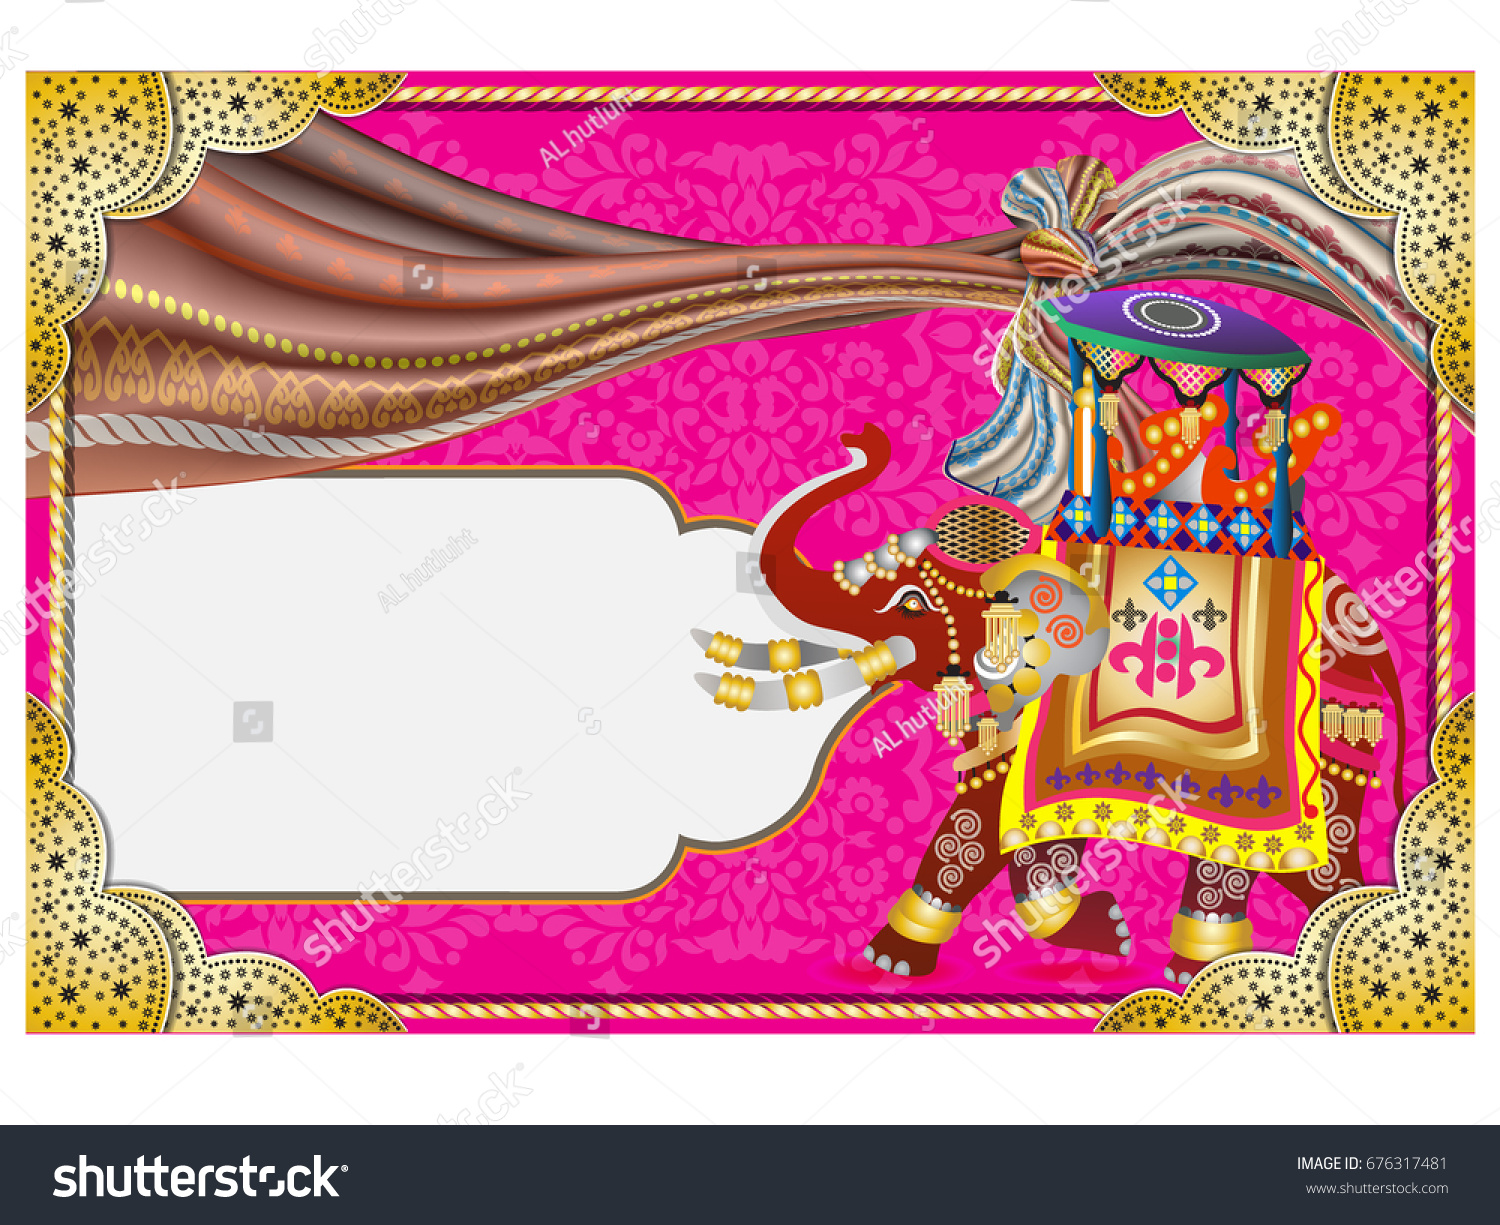 Free Online Indian Wedding Invitation Website: Vector Illustration Indian Wedding Invitation Card Stock